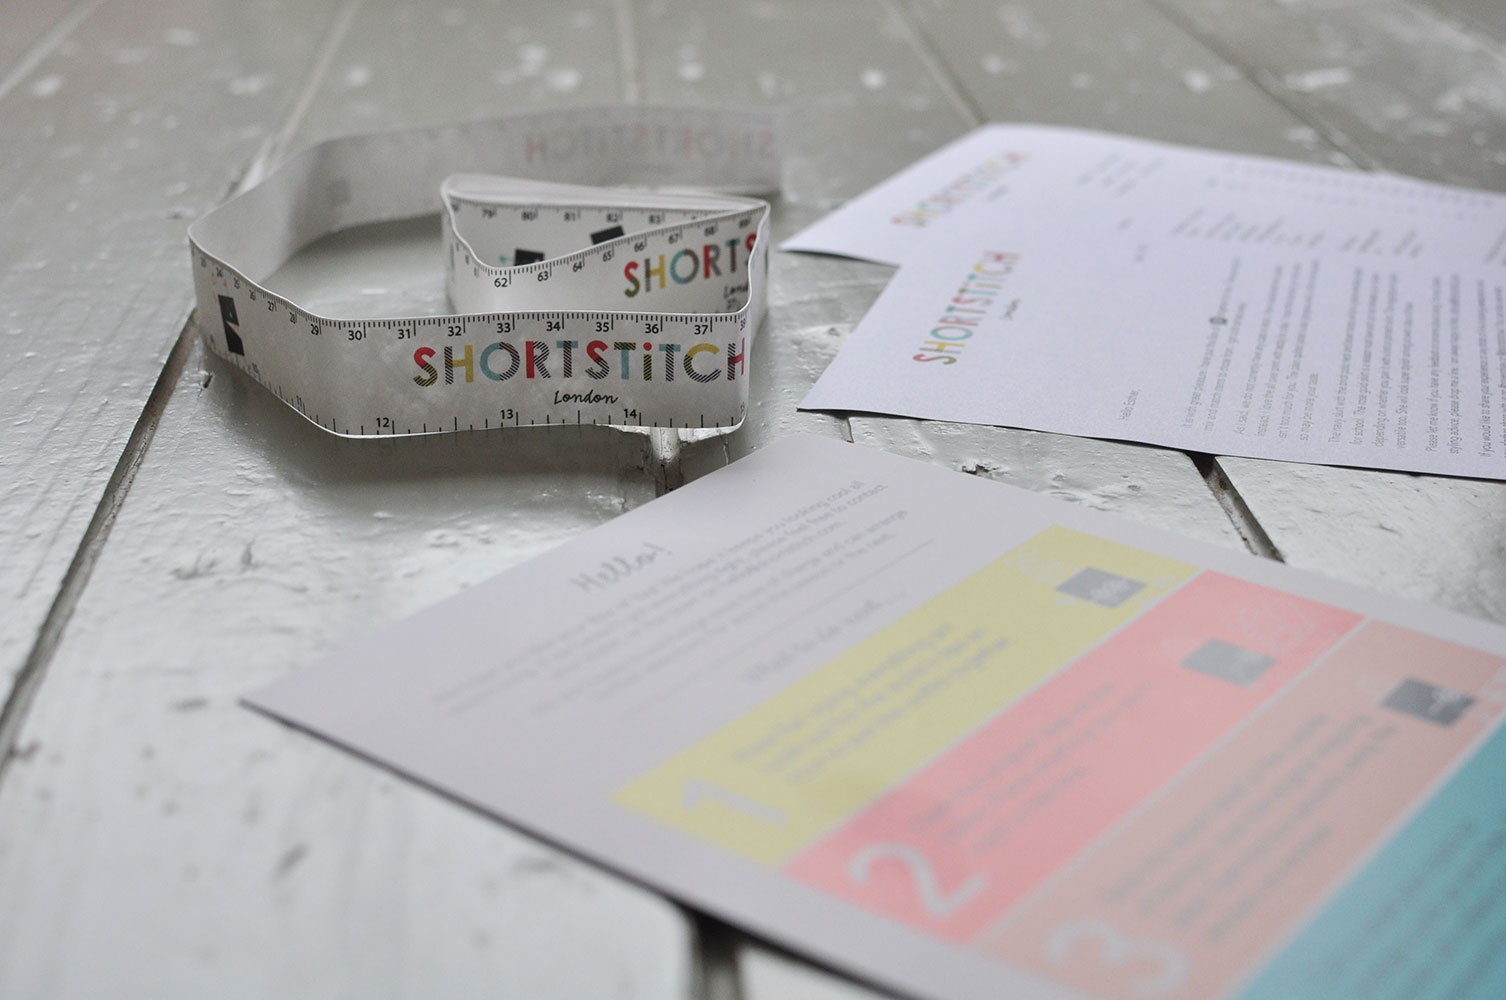 Shortstitch personal shopping service